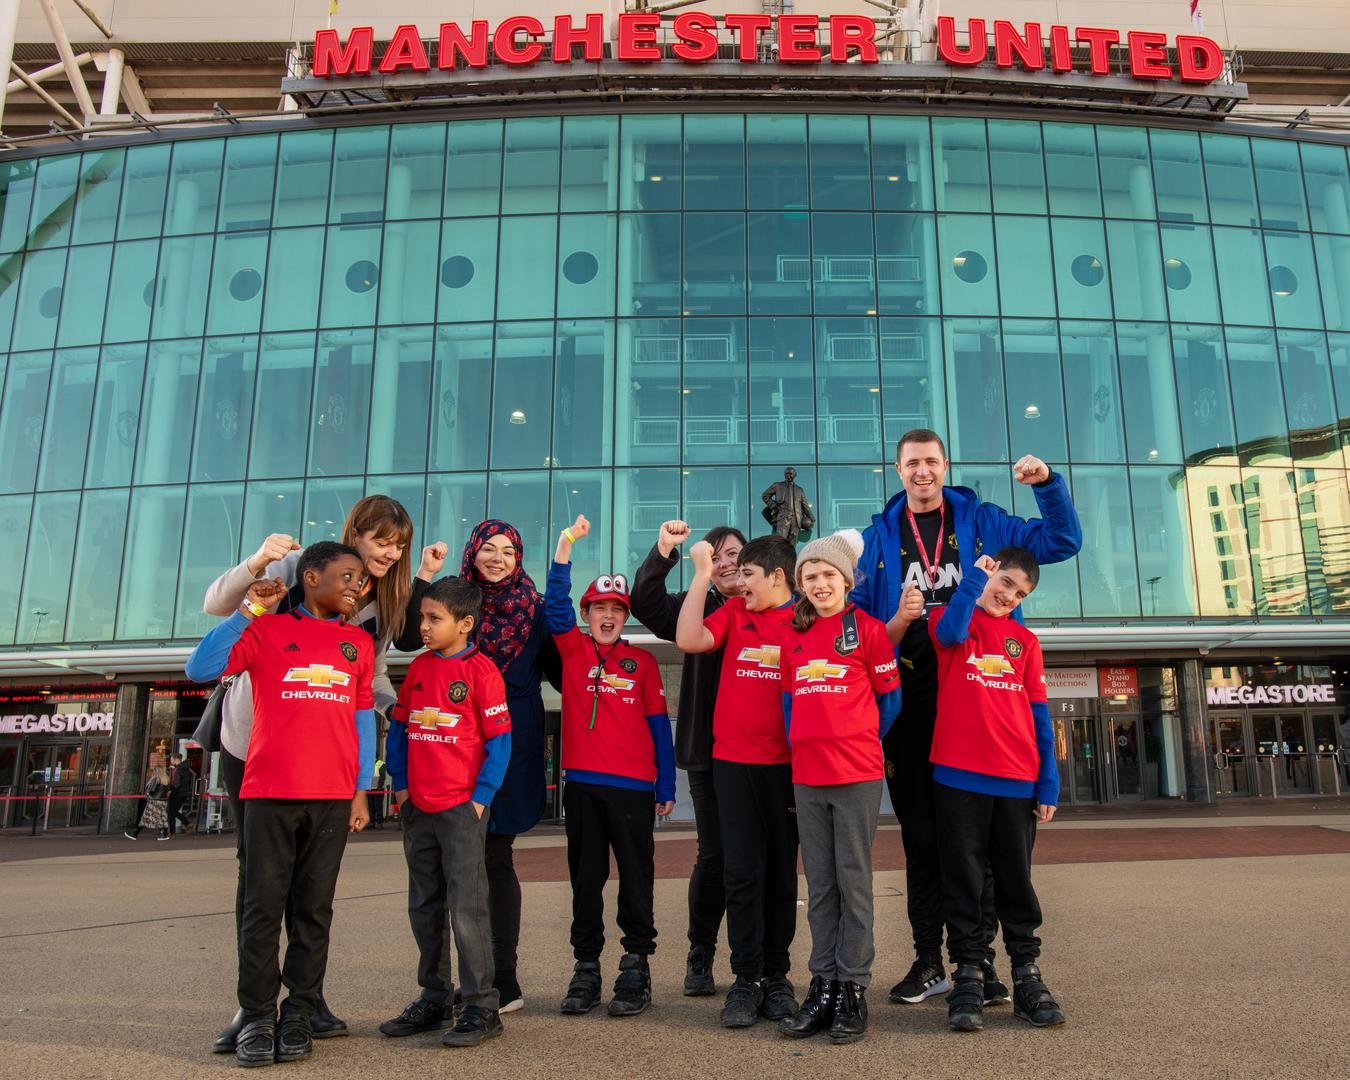 Fans standing outside the club Megastore.